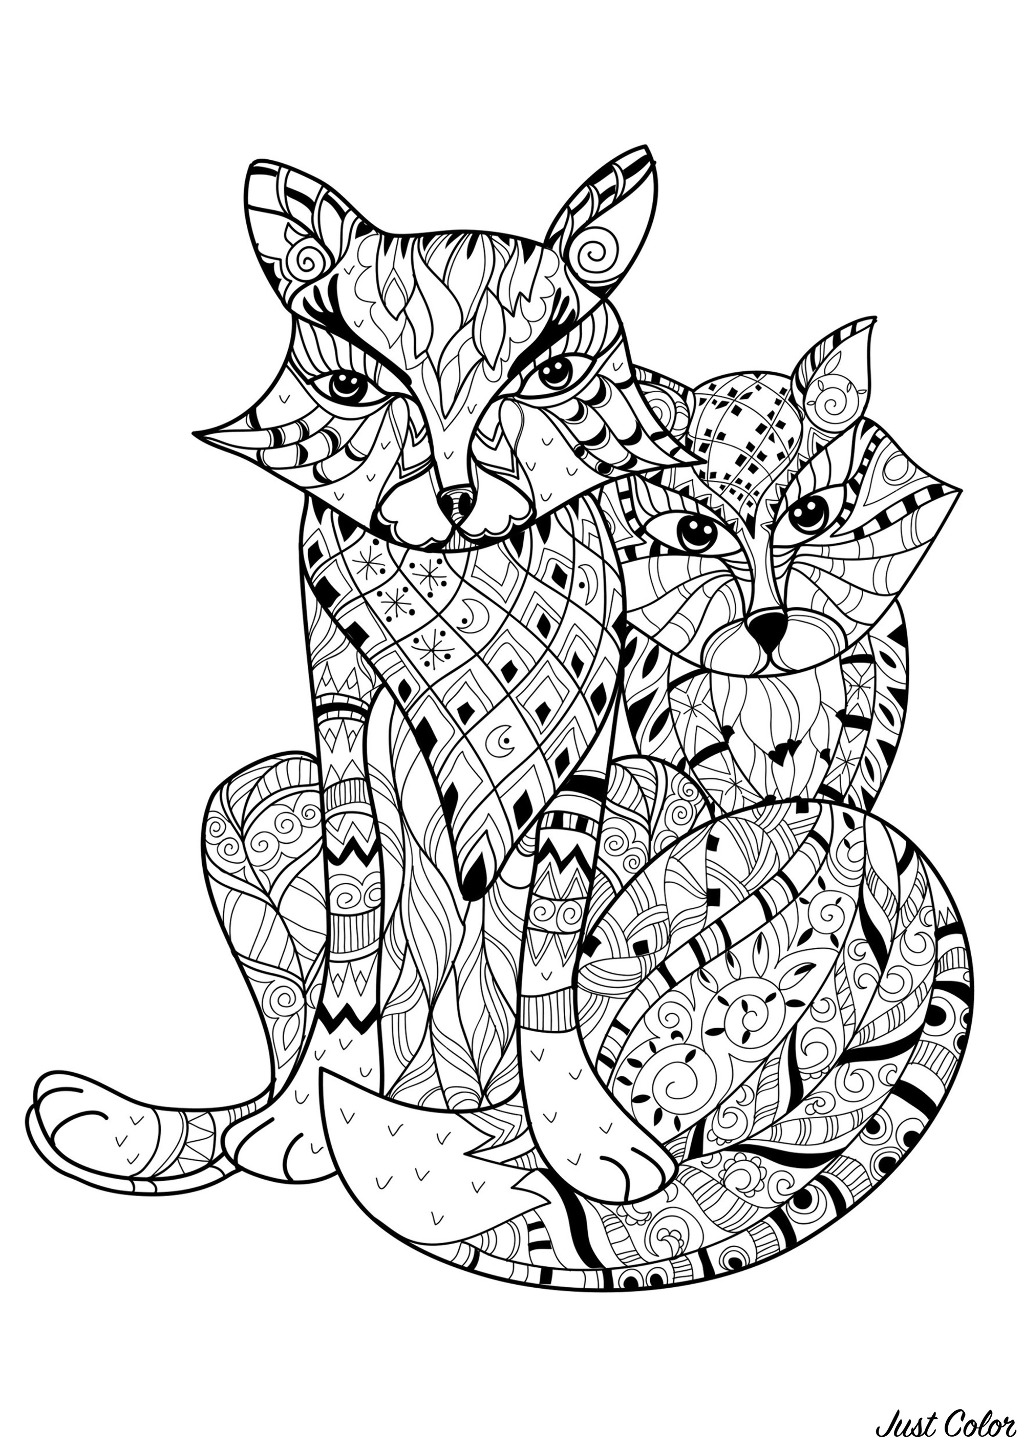 Color these two foxes and their incredible patterns